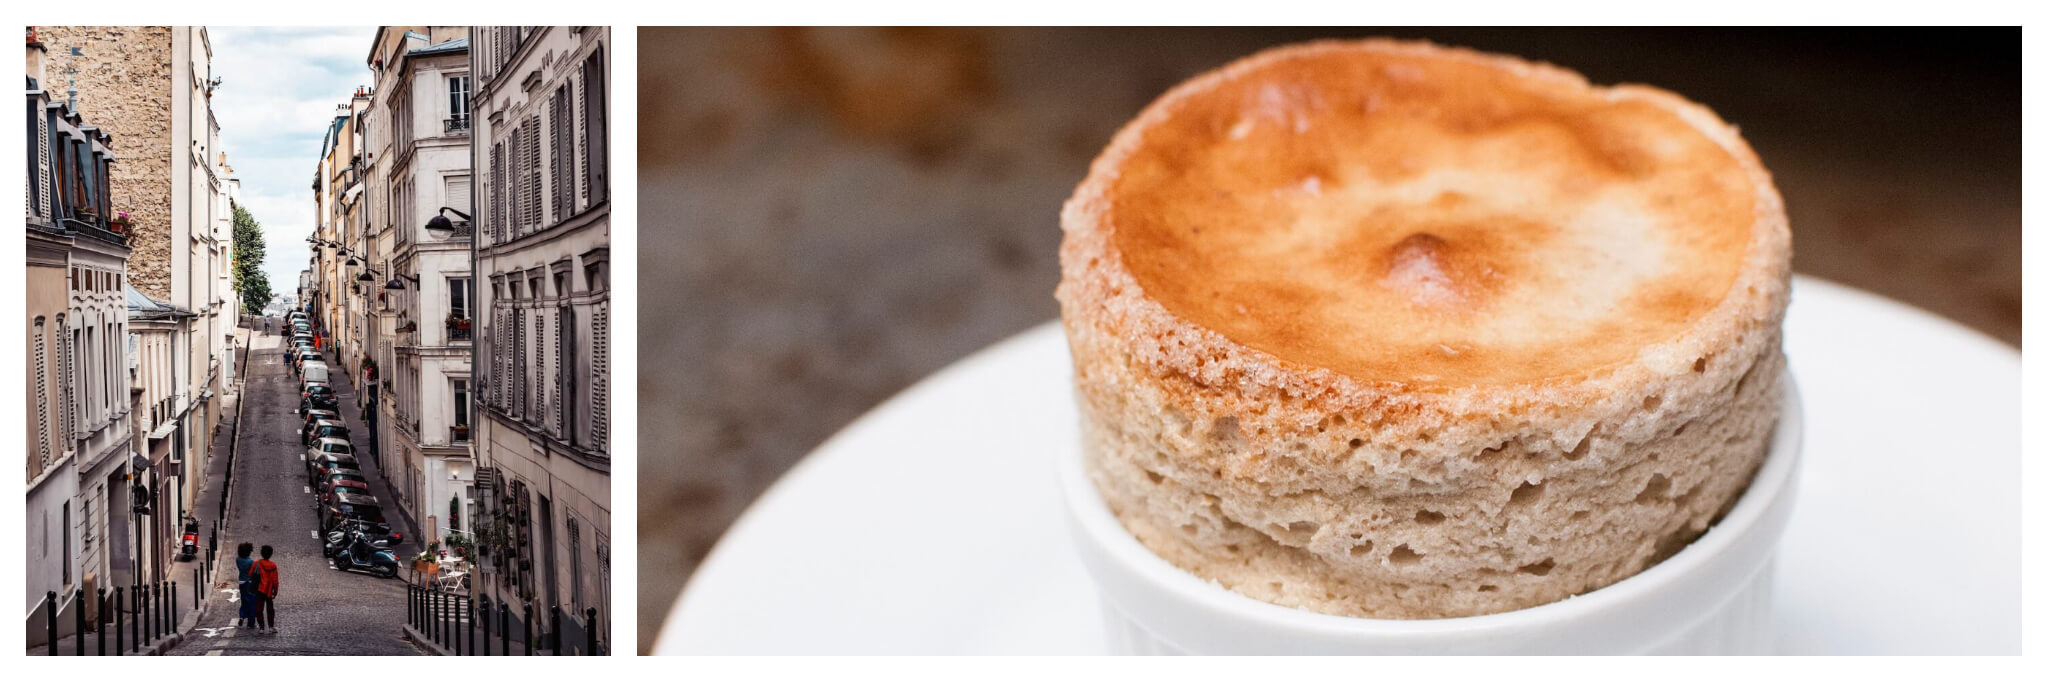 Left: Two people are seen walking closely side-by-side through Paris' hilly Montmartre neighborhood, Right: A freshly baked cake cooks upward out of a ramekin dish.